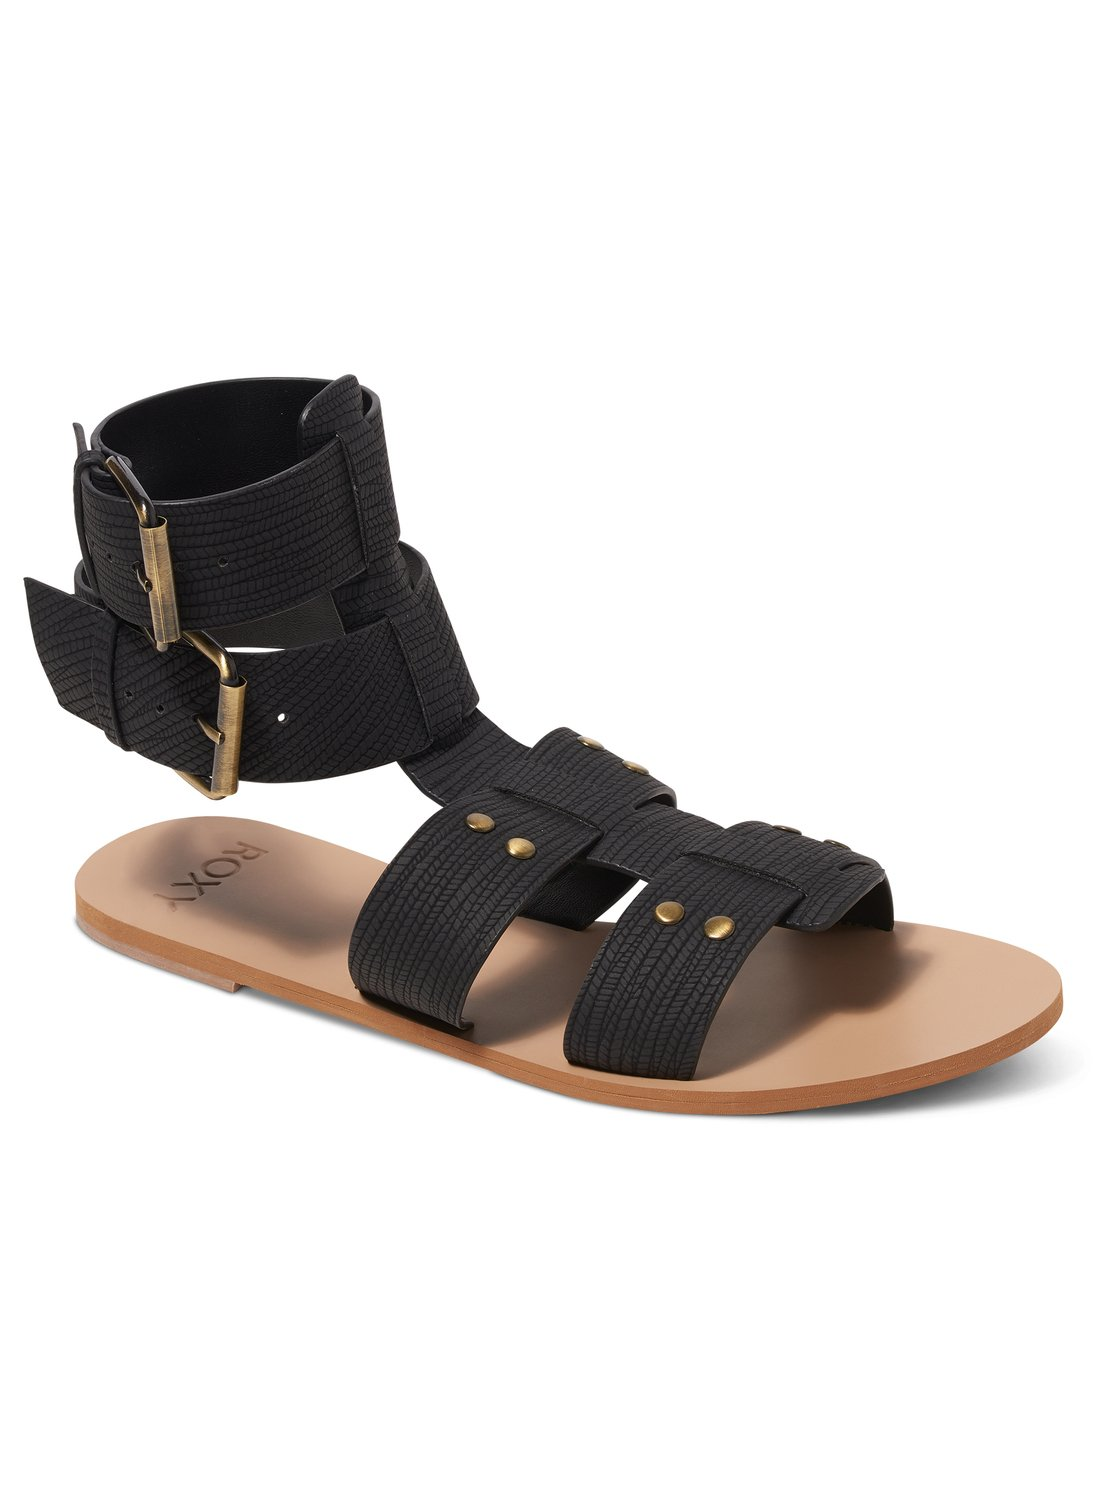 Tyler Sandals Arjl200530 Roxy Tendencies Footbed 2 Strap Brown 41 0